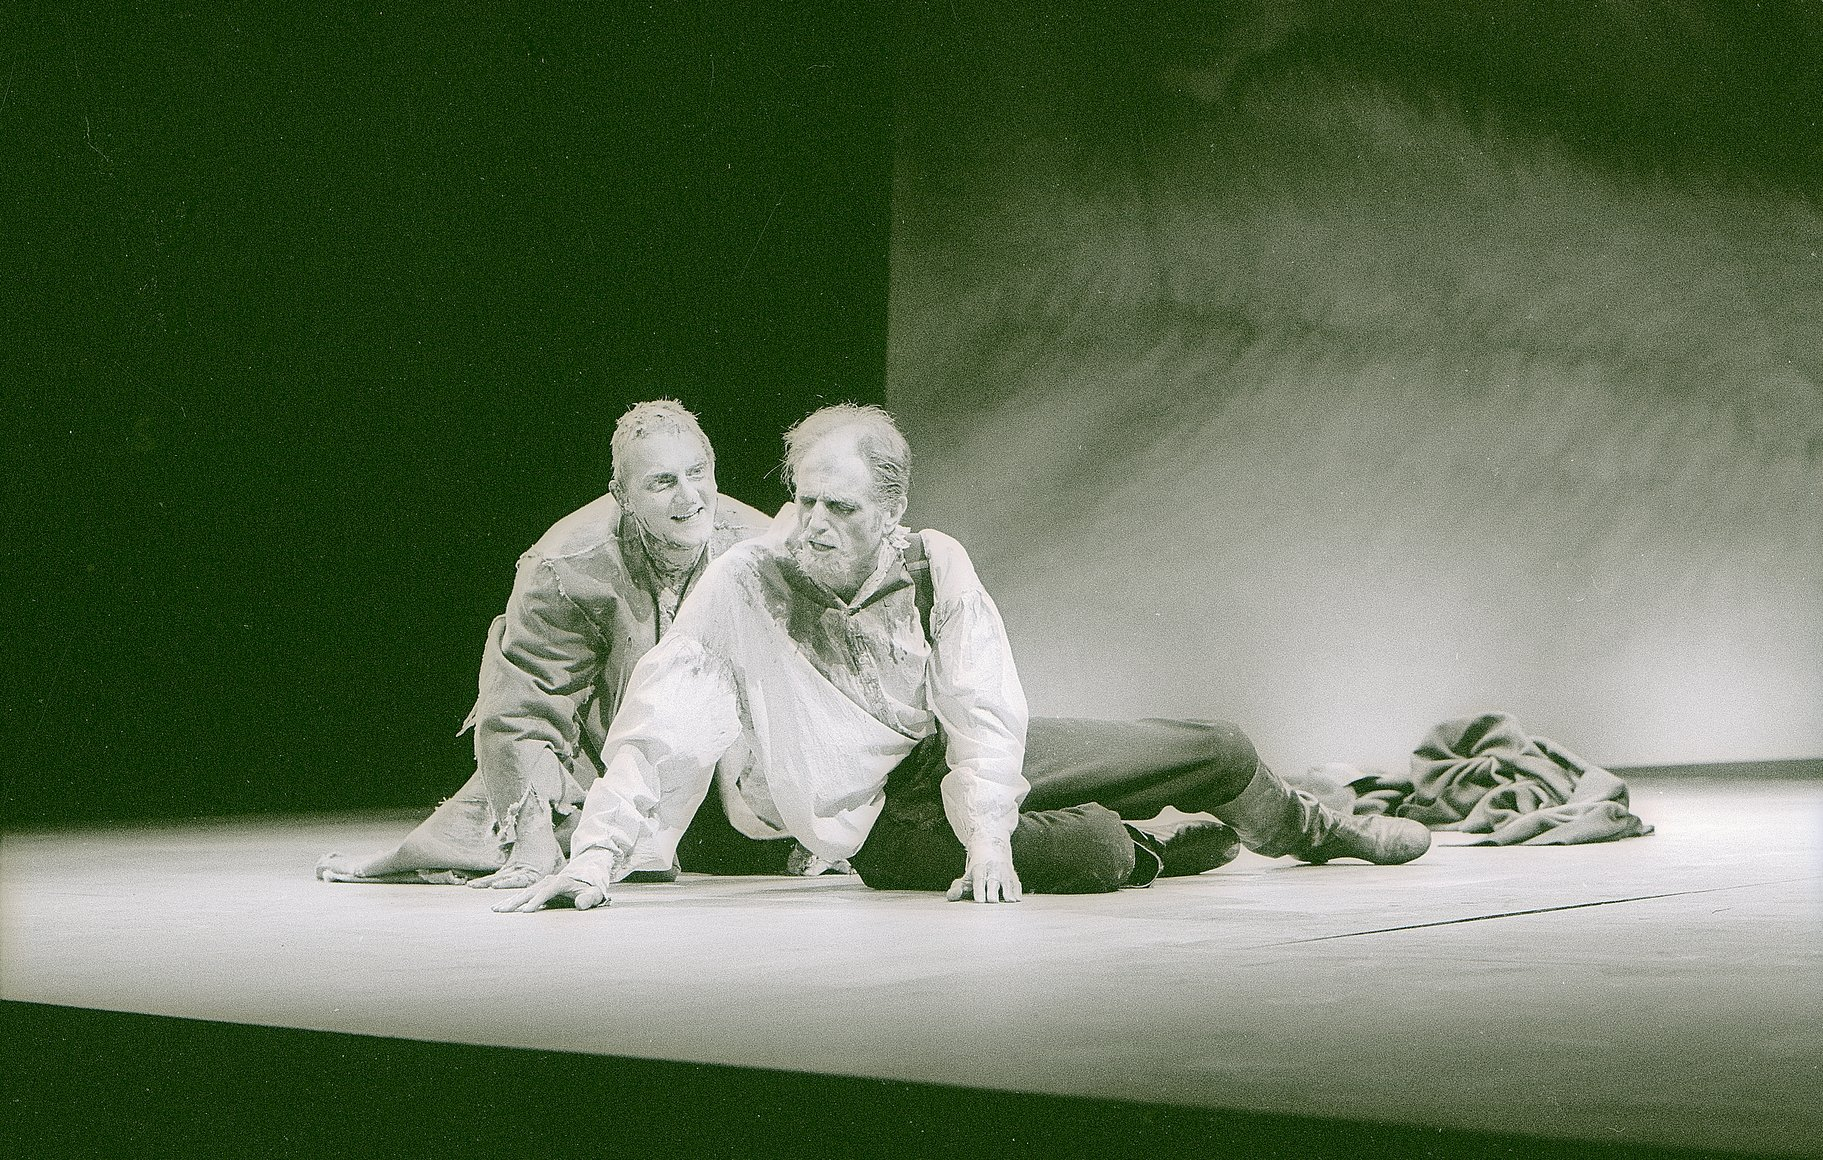 Two men lie near the edge of the stage.